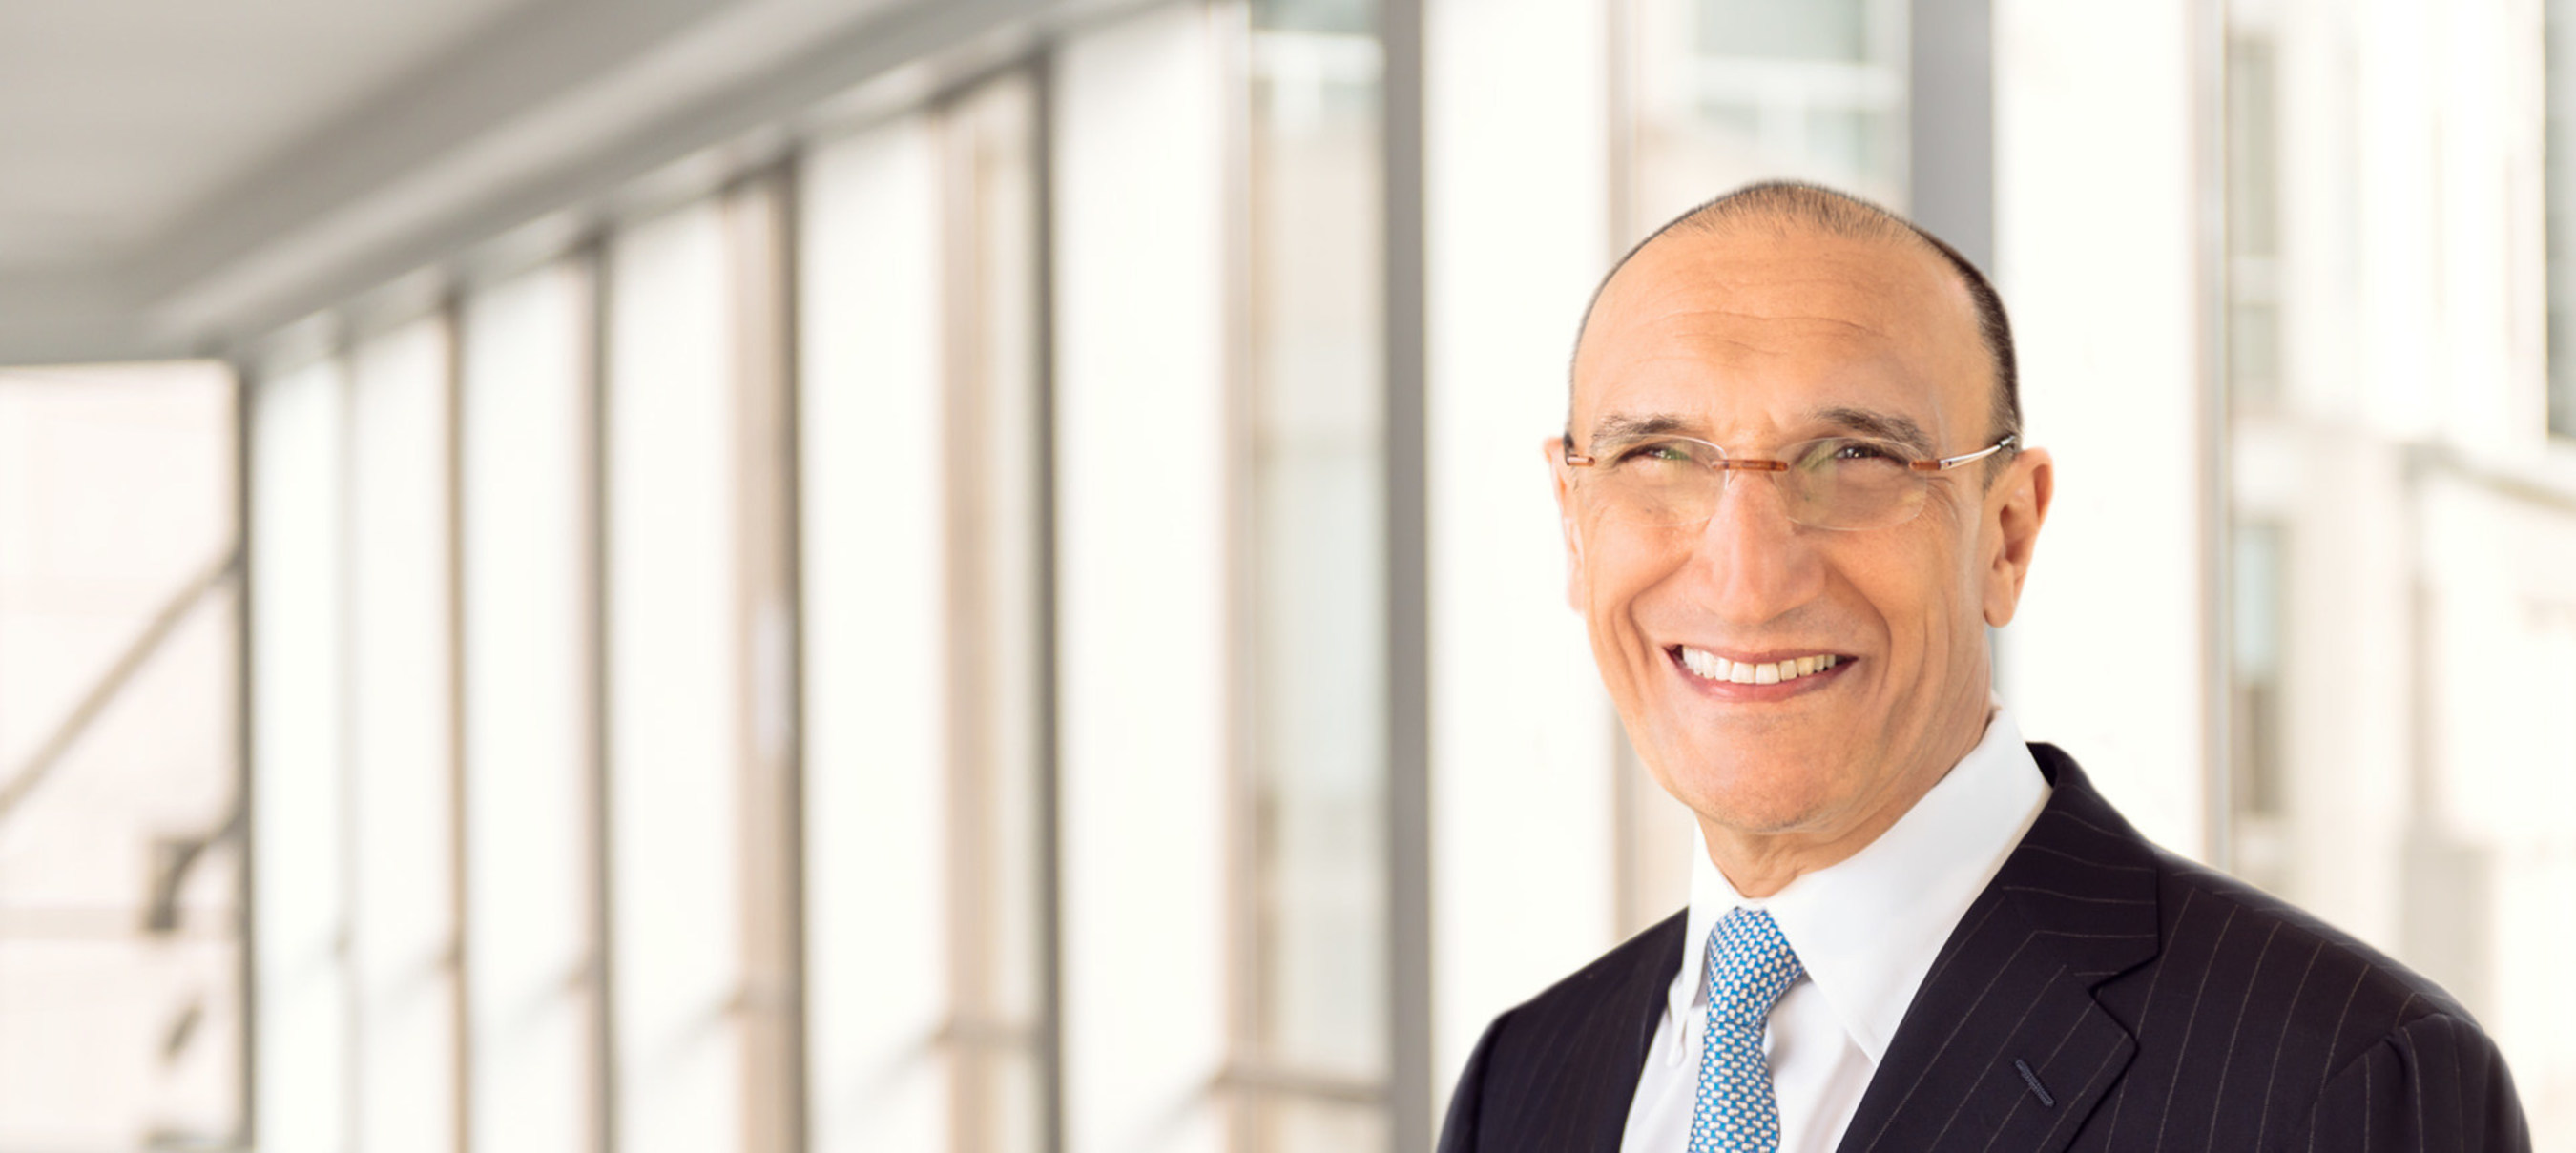 Michael Marino will succeed Hart as President and CEO of the Senn Delaney subsidiary and has also been named Executive Vice President of Heidrick & Struggles.